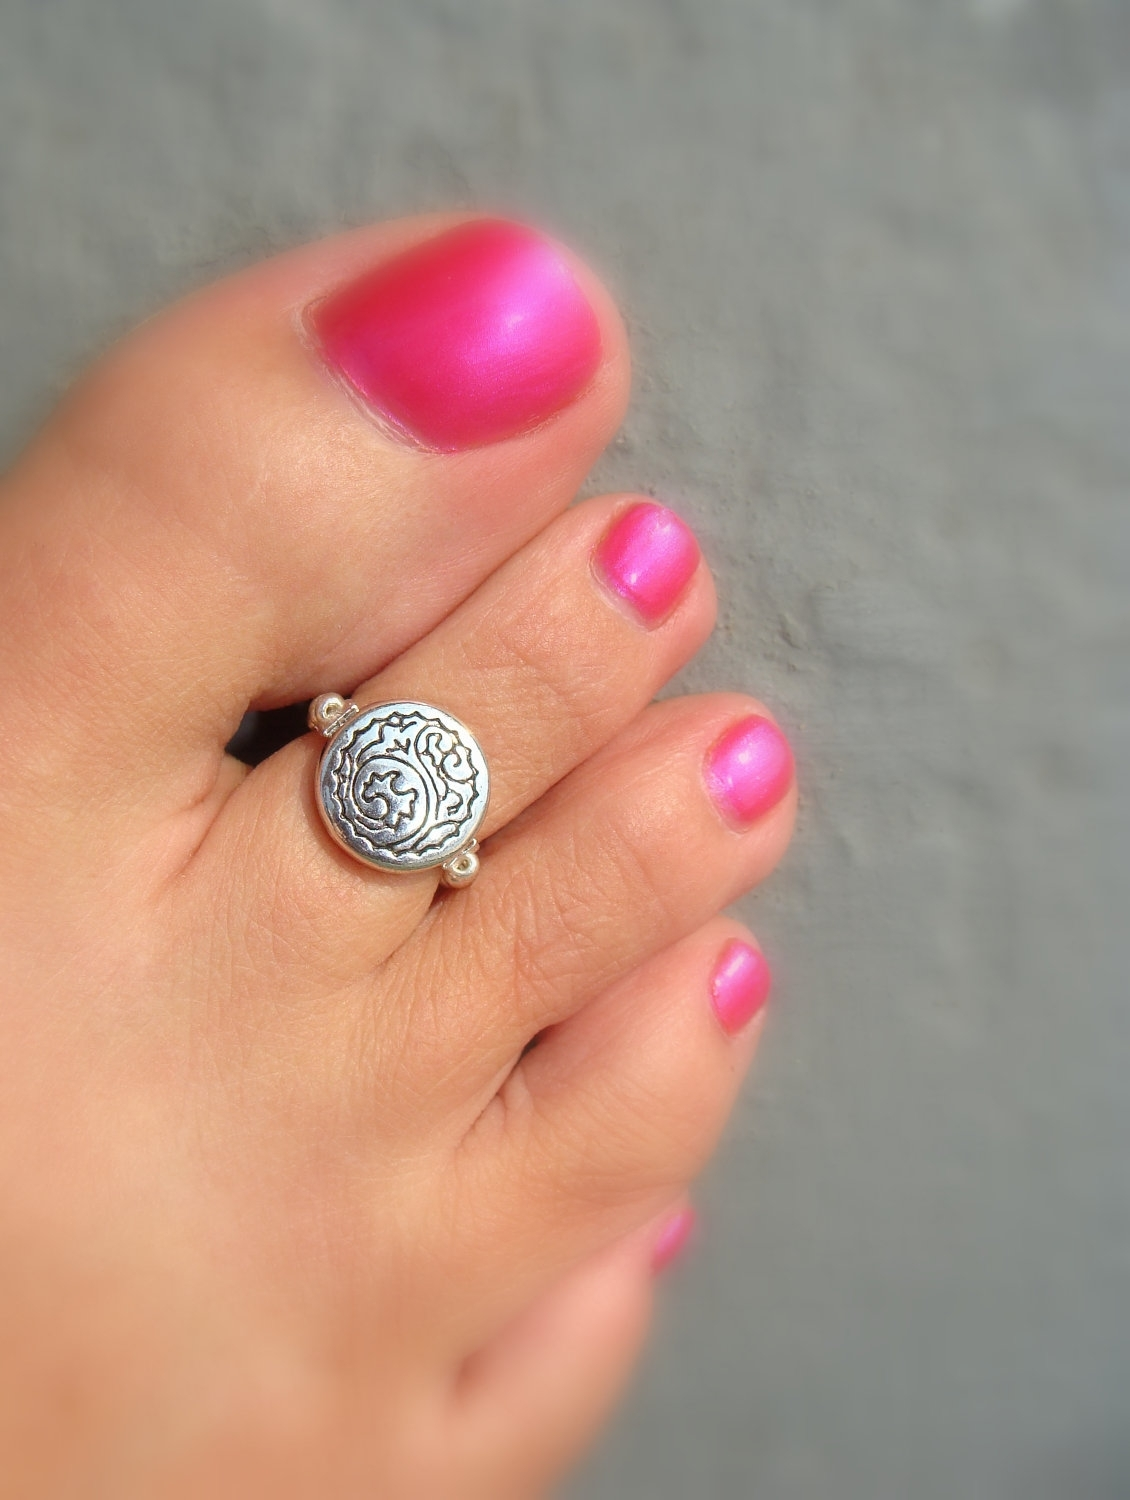 Toe Ring – Silver Wind Wave Coin Stretch Bead Toe Ring | Toe Rings Pertaining To Most Popular Etsy Toe Rings (View 13 of 15)